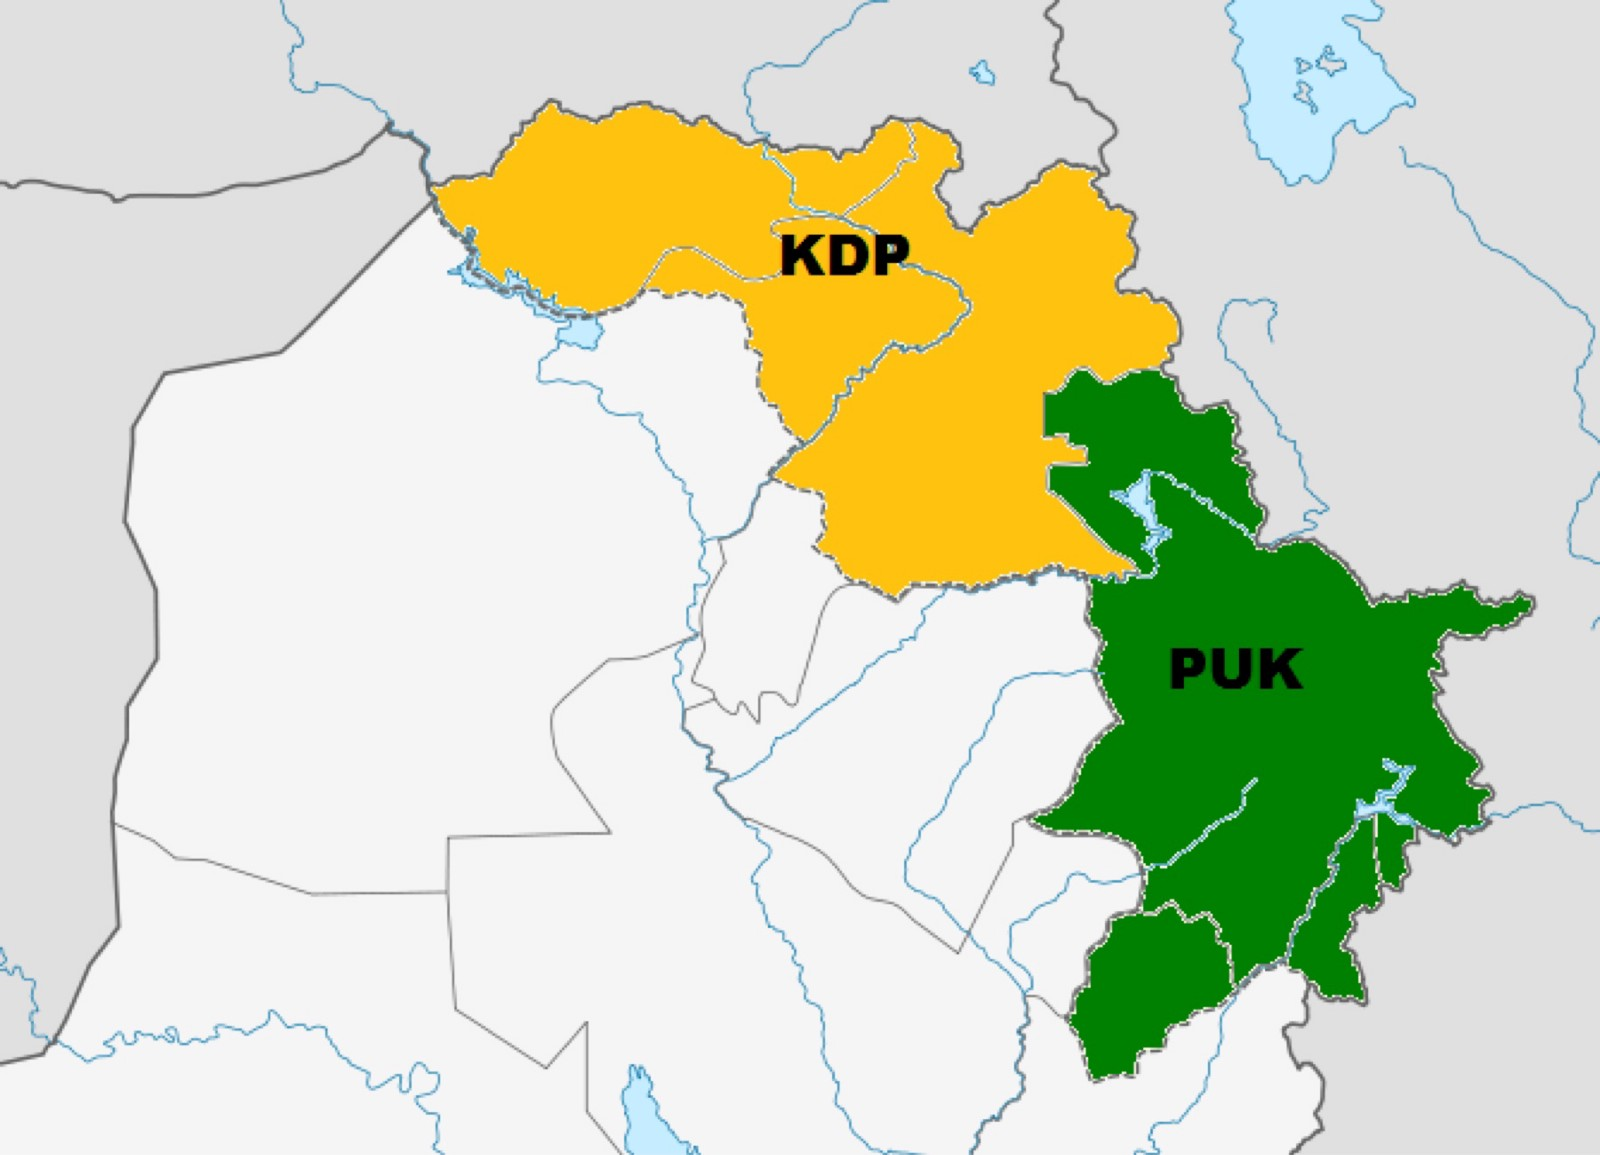 Kurdistan why it is not on the map mrkailani medium areas of northern iraq controlled by main kurdish groups 1991 this was the area given to iraqi kurdistan by an autonomy request from separatists sciox Image collections